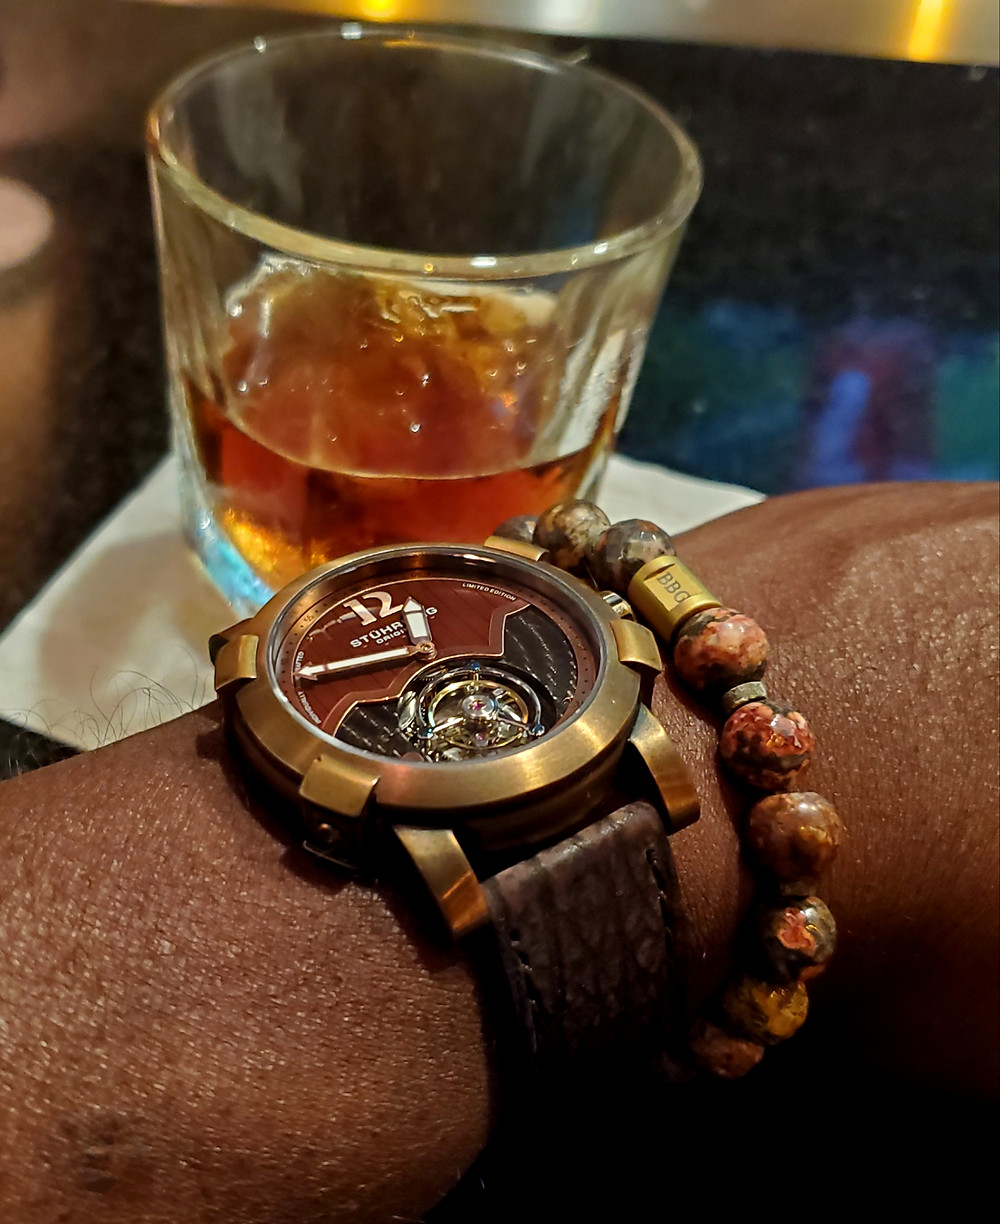 WOTD wrist-shot of the Stuhrling Original, Devilray Tourbillon.  Paired with a custom-crafted bracelet, designed by Beads By Gonzo.